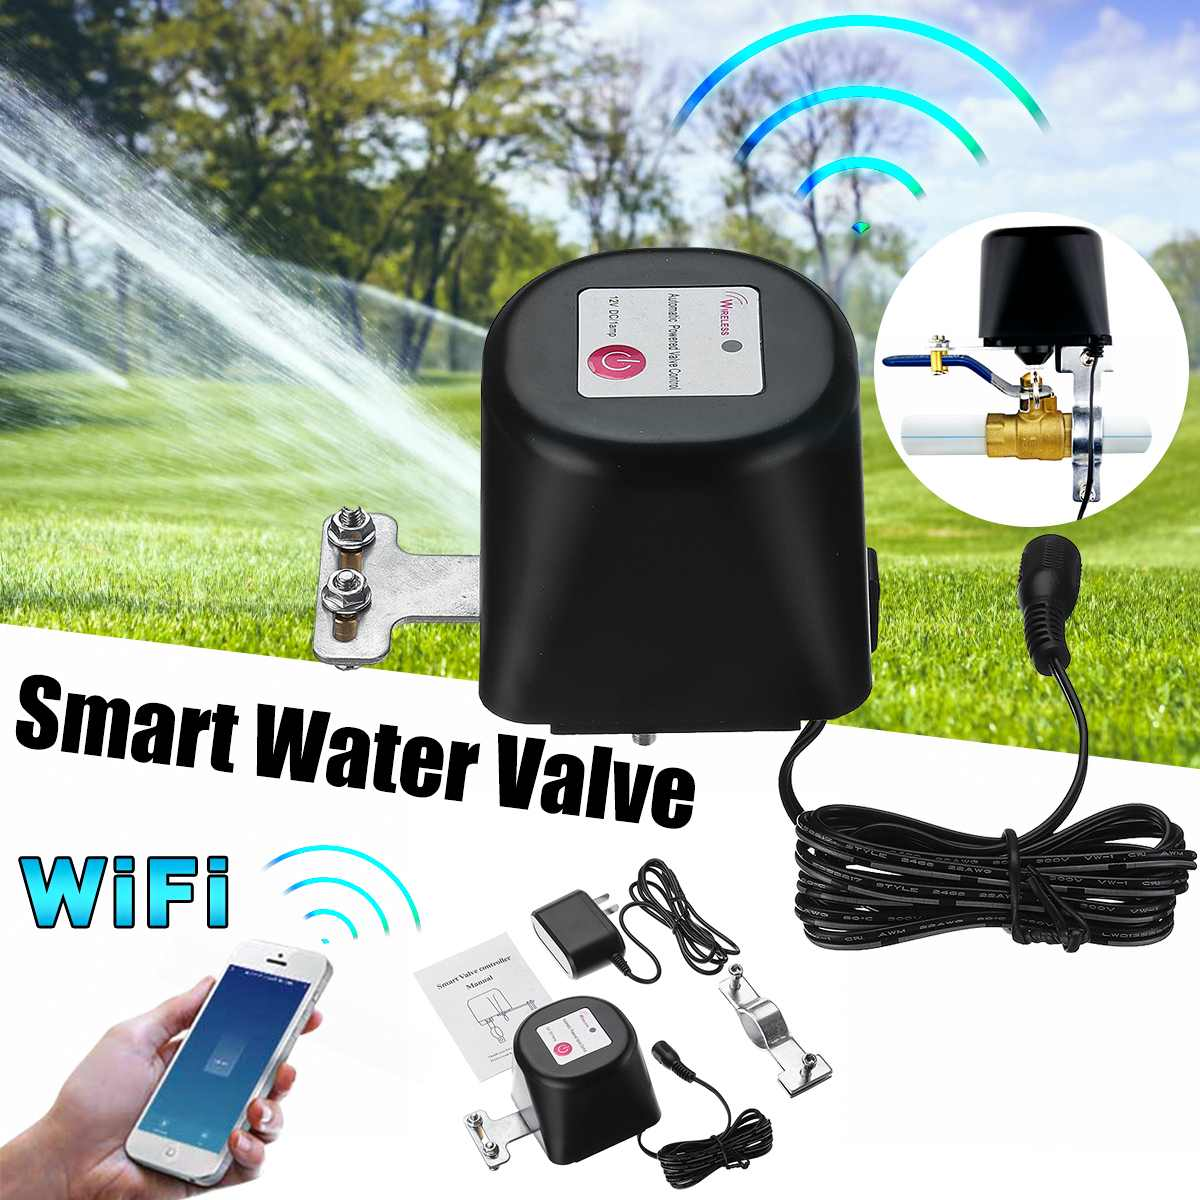 Wifi Smart Water Valve Smart Home Automation System Valve For Gas Water Control Work 12V 1A